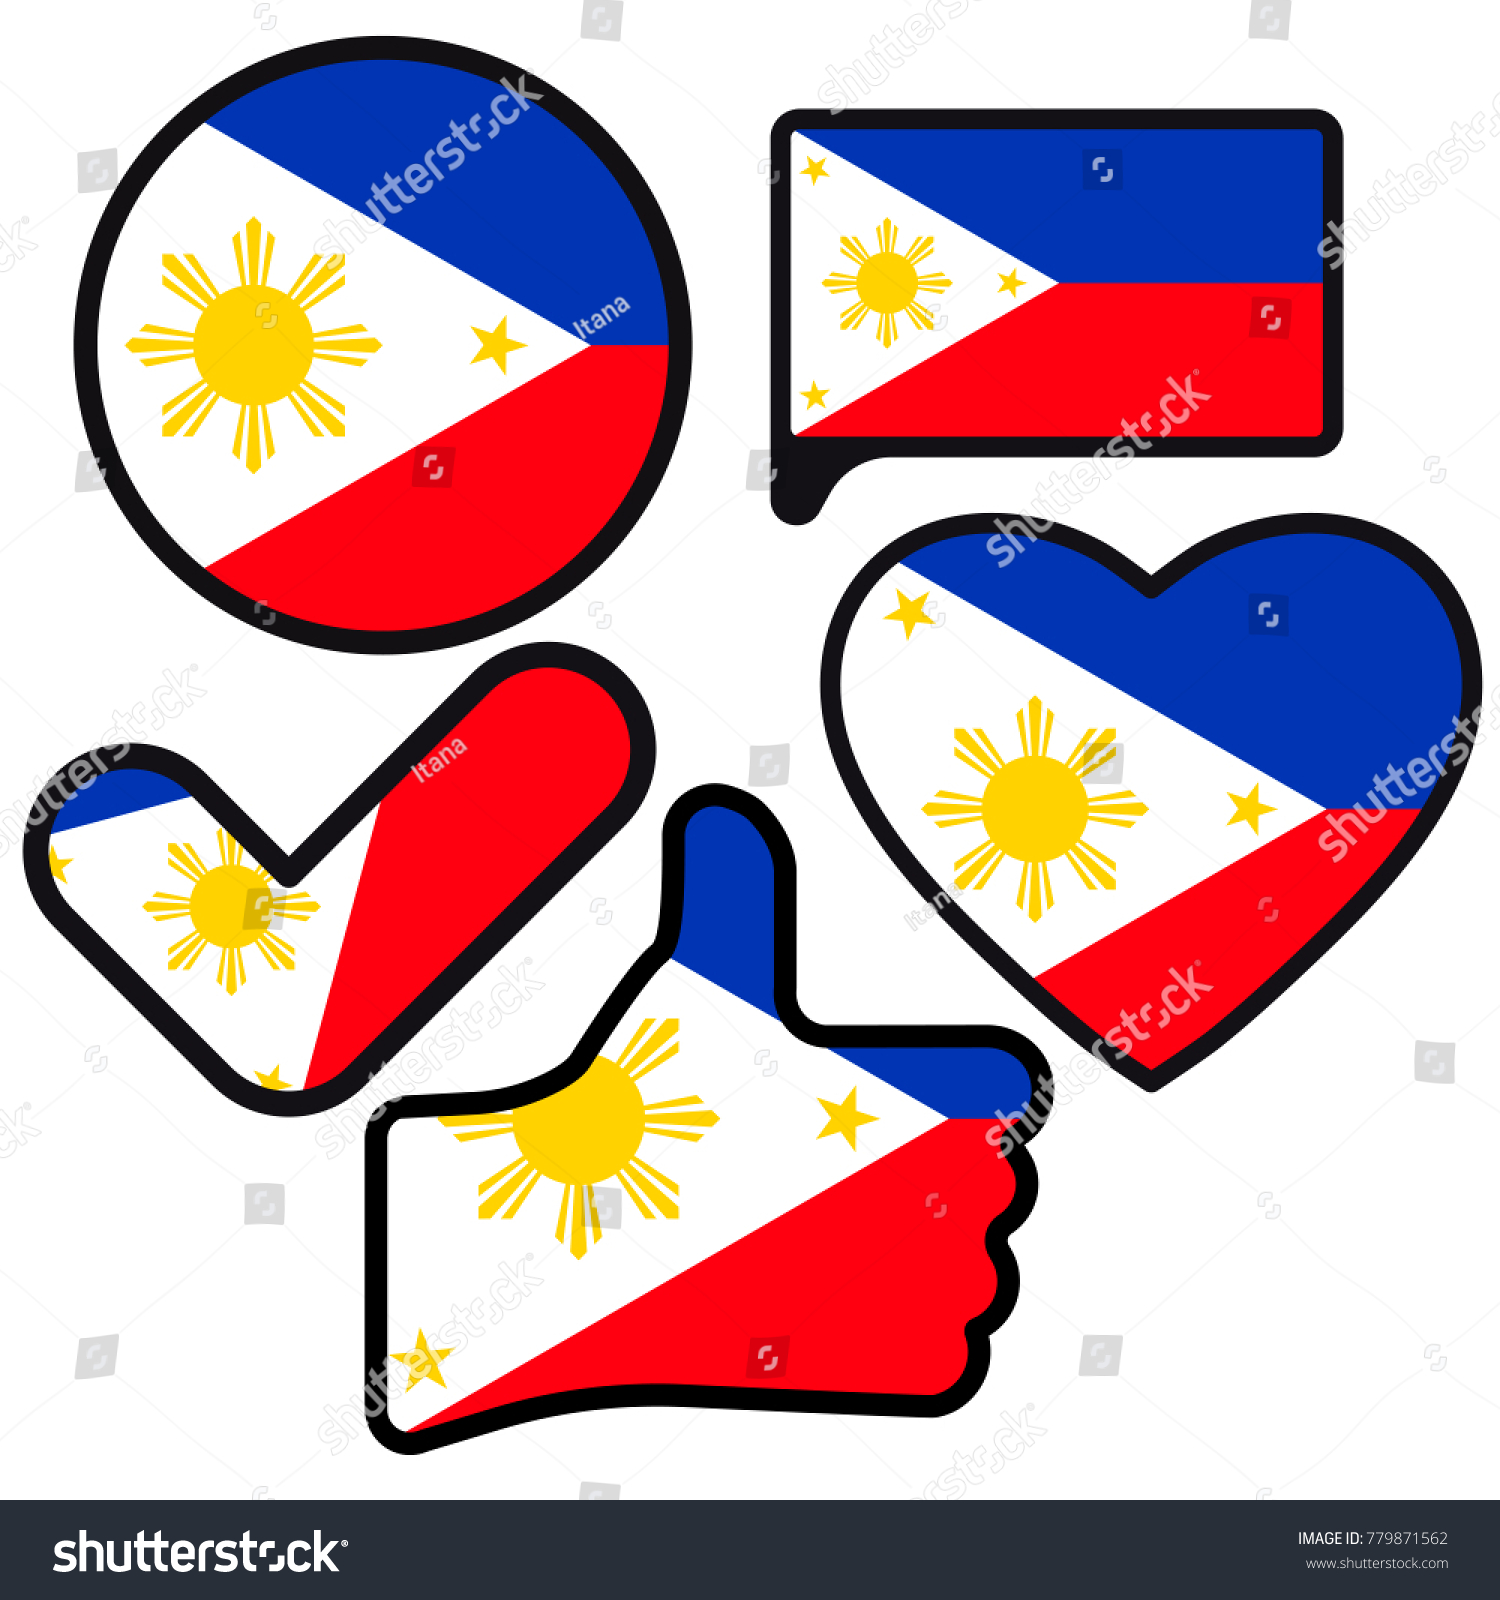 Flag philippines shape button heart like stock illustration flag of philippines in the shape of button heart like check mark biocorpaavc Choice Image